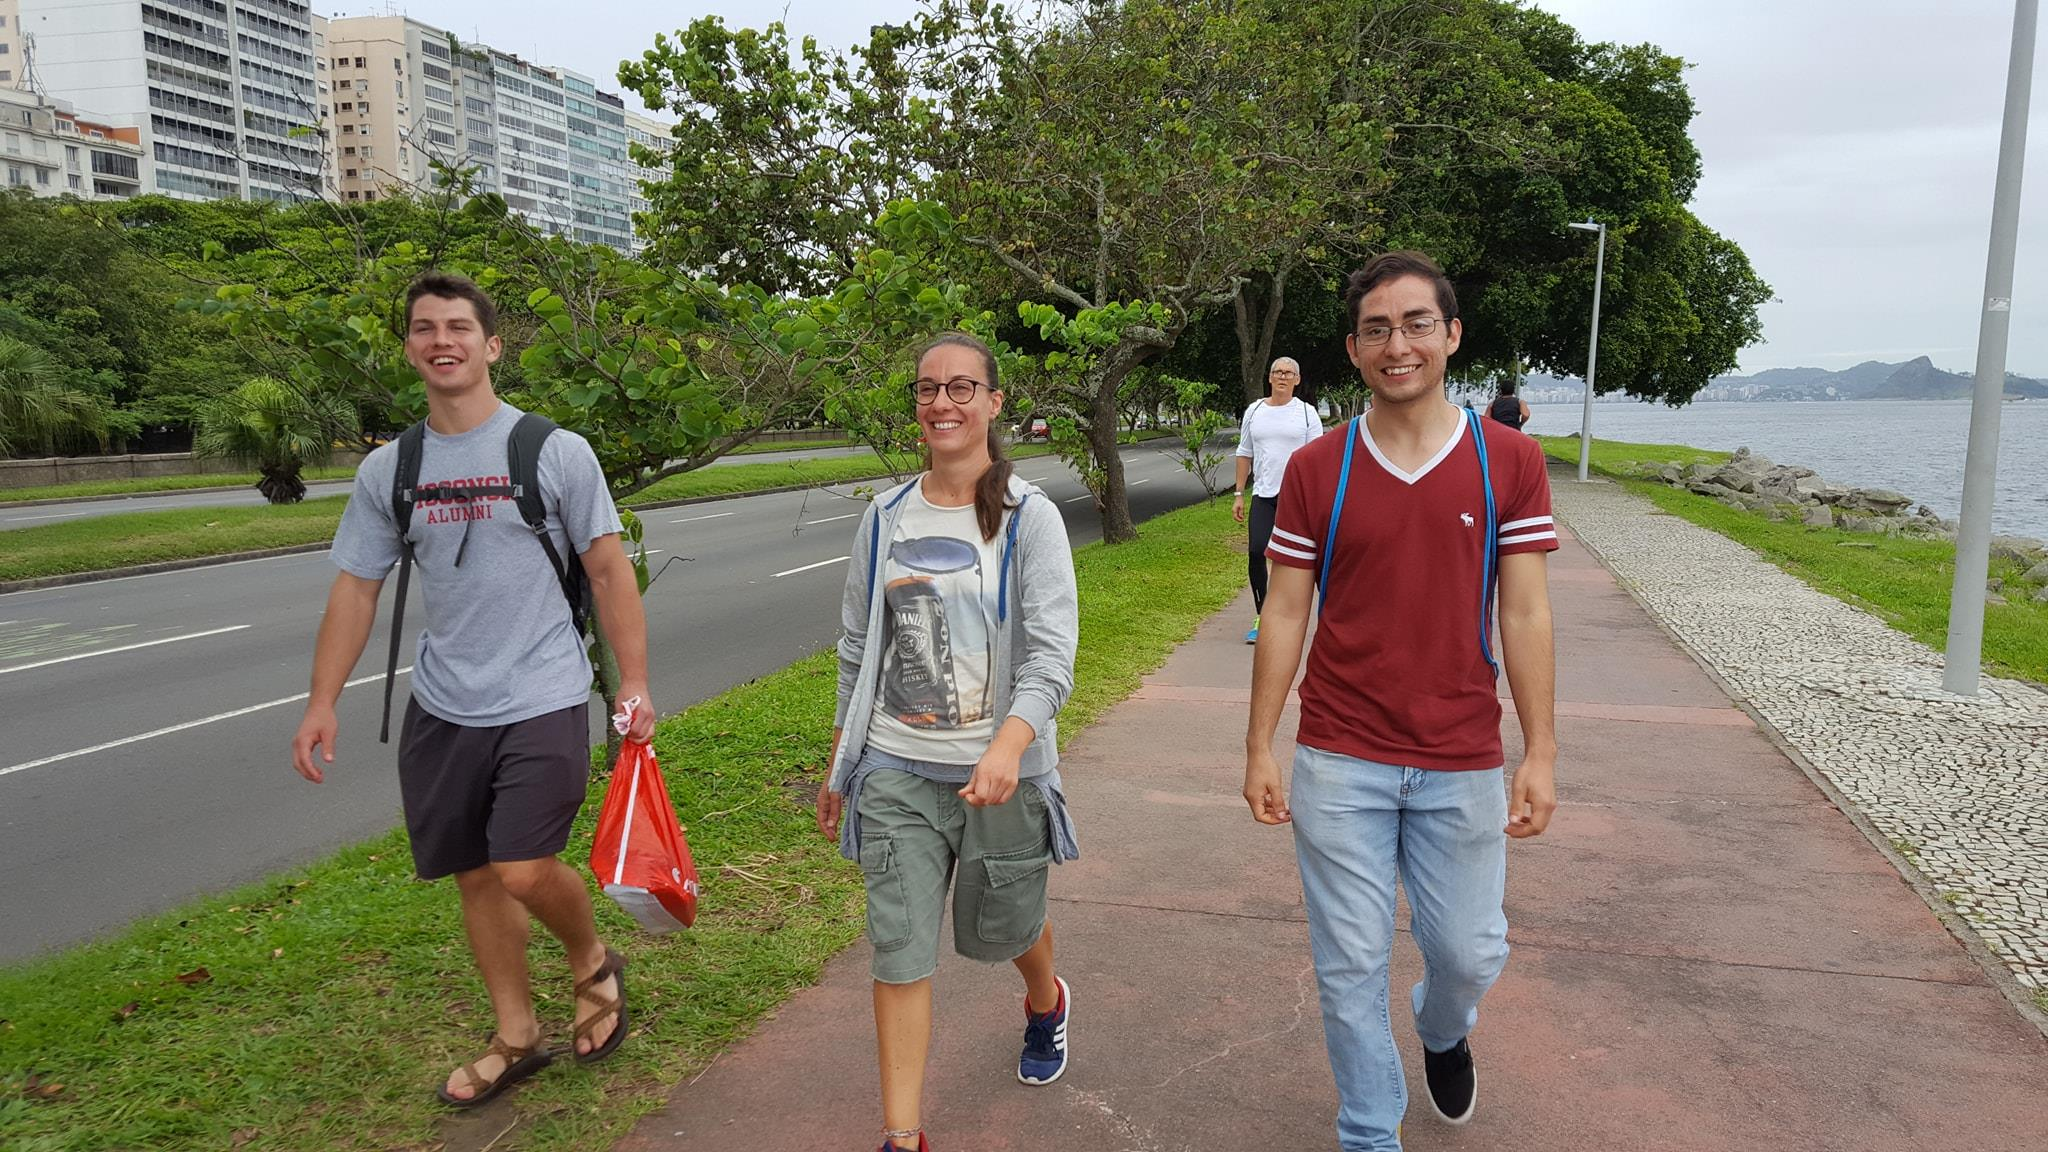 Walk, walk fashion baby! Foreigner students walking along Botafogo Cove.